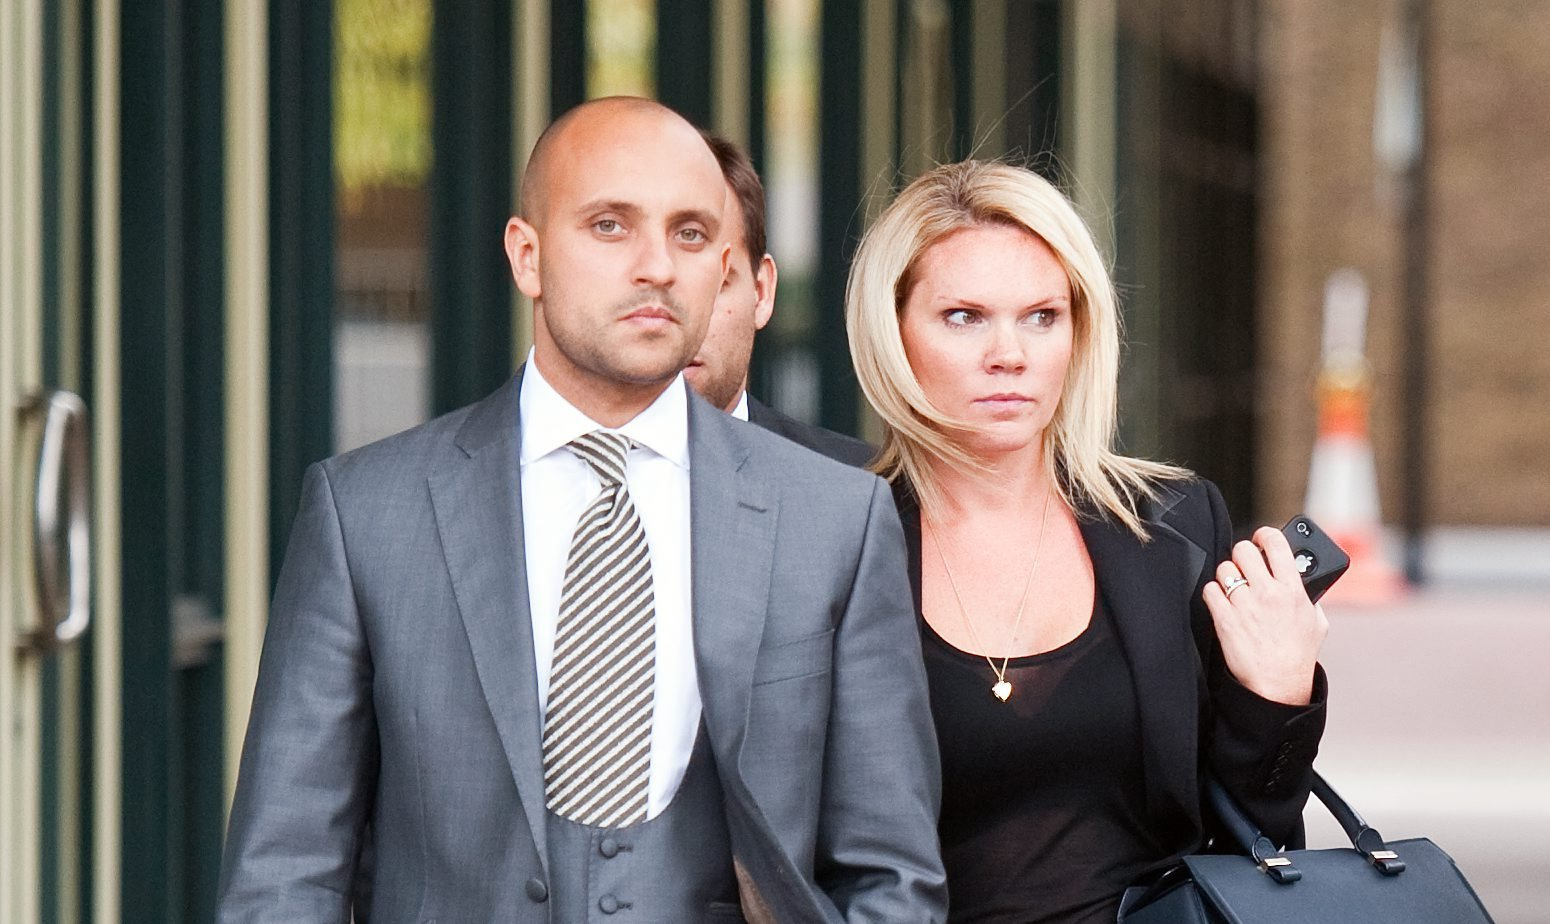 FILE PHOTO - Louise Flood (centre) the sister of Victoria Beckham leaves an employment tribunal in London with her husband Darren Flood (left, foreground). September 7 2011.See National News story NNbecks.David Beckham?s former brother-in-law faces up to six years in jail after his firm wined and dined investors and fleeced them of their savings in an ?800,000 boiler room fraud.The former husband of Victoria Beckham?s sister, Darren Flood found elderly people to lure into buying worthless ?rare earth metals? as a director of The Commodities Link. His cronies ?made great play? of his ties to the former England football captain to gain victims? trust and even planned scamming the dad of ex-Chelsea midfielder Joe Cole.They pushed OAPs into the scheme with lavish meals and promised a 300 per cent return on their investments but ignored them when they tried to cash out.